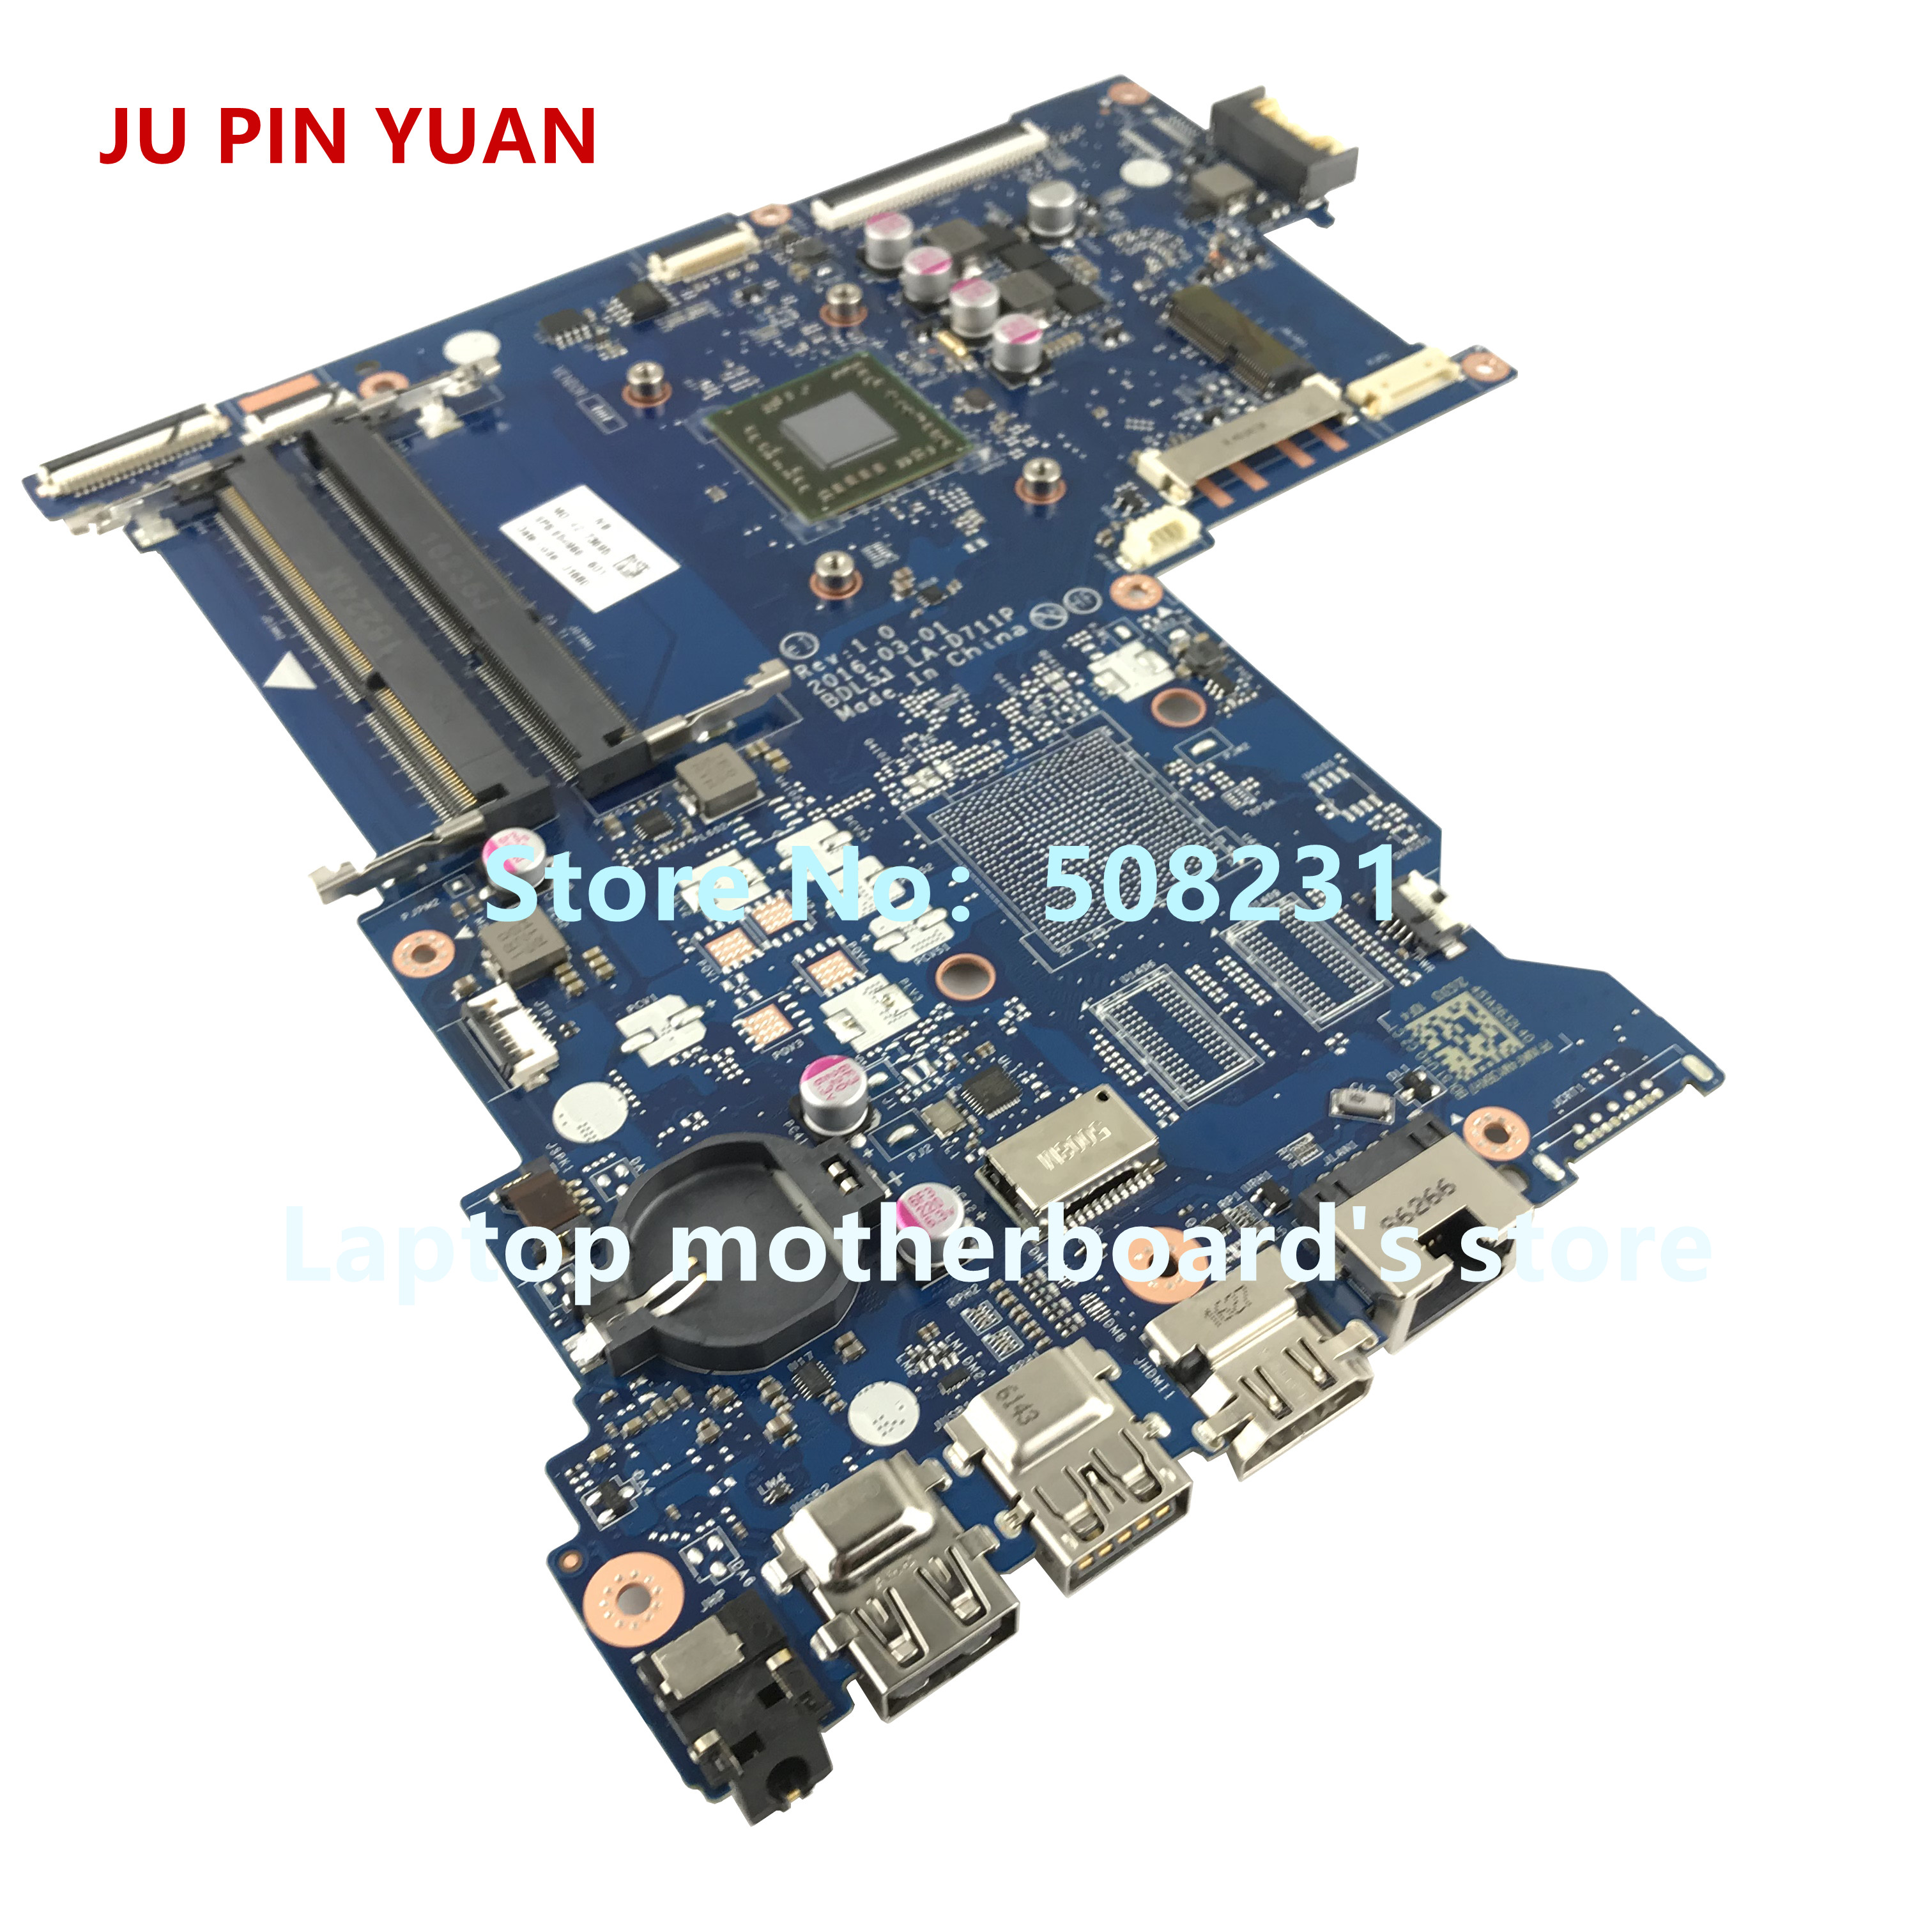 JU PIN YUAN 854966 601 854966 001 BDL51 LA D711P mainboard for HP NOTEBOOK 15 BA PC Laptop motherboard A6 7310 fully Tested in Laptop Motherboard from Computer Office